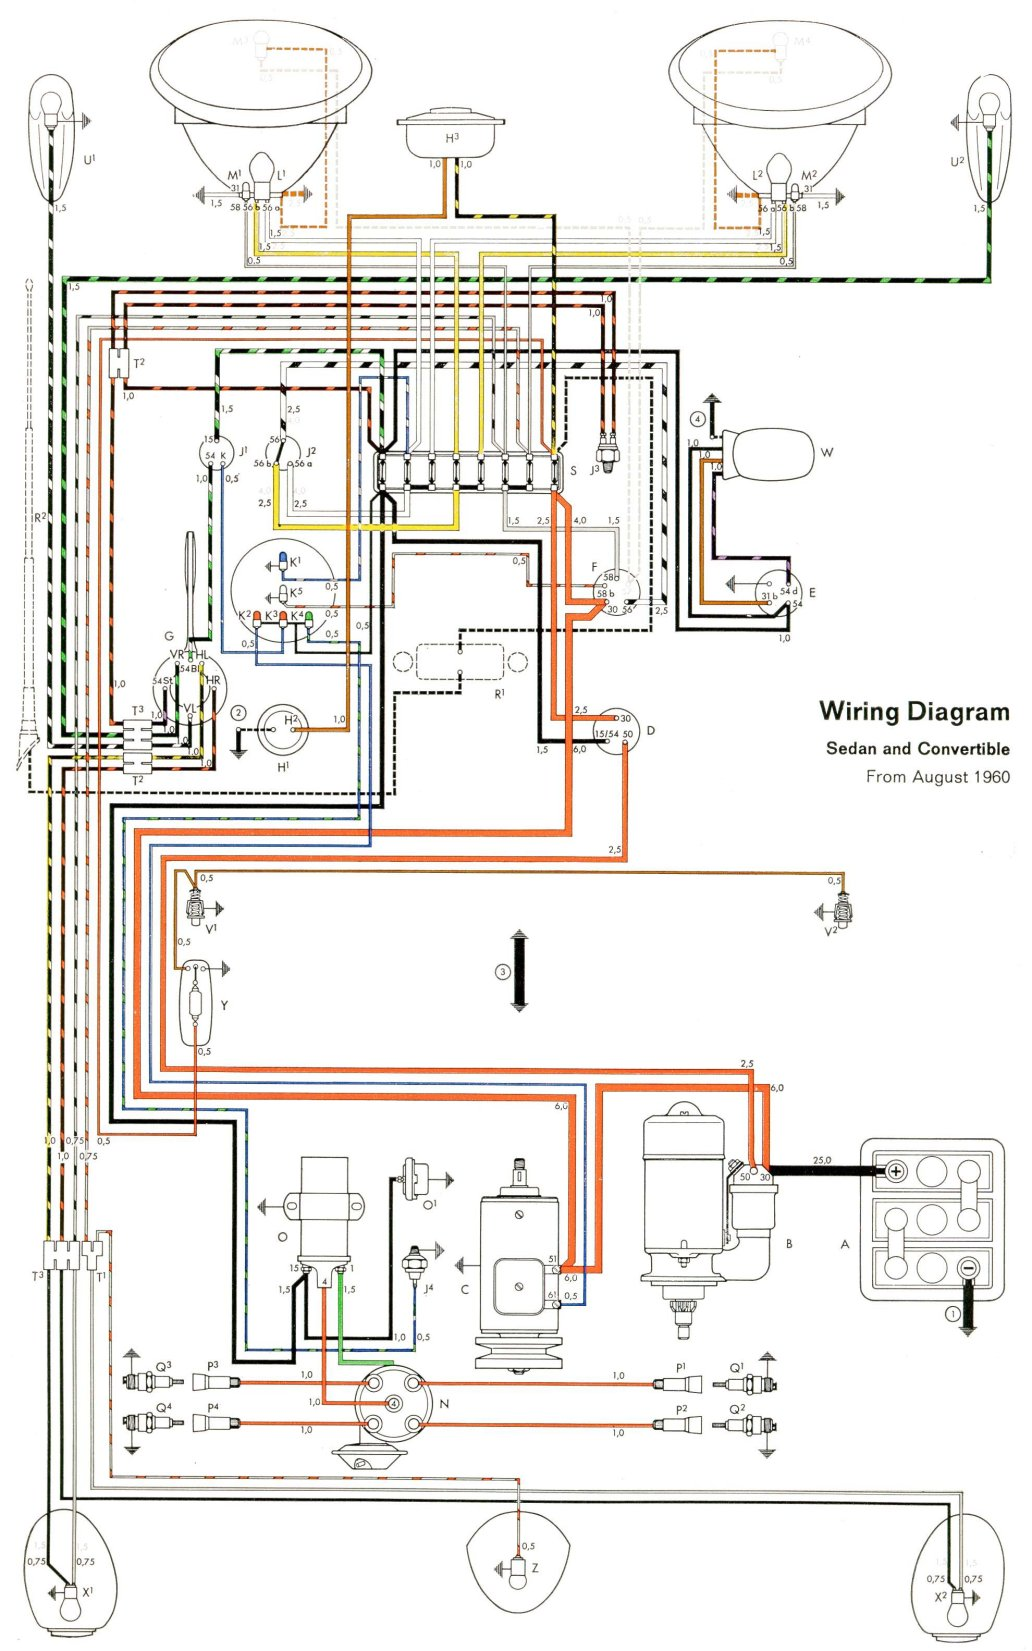 thesamba com type 1 wiring diagrams rh thesamba com beetle wiring diagram 1971 beetle wiring diagram 1971